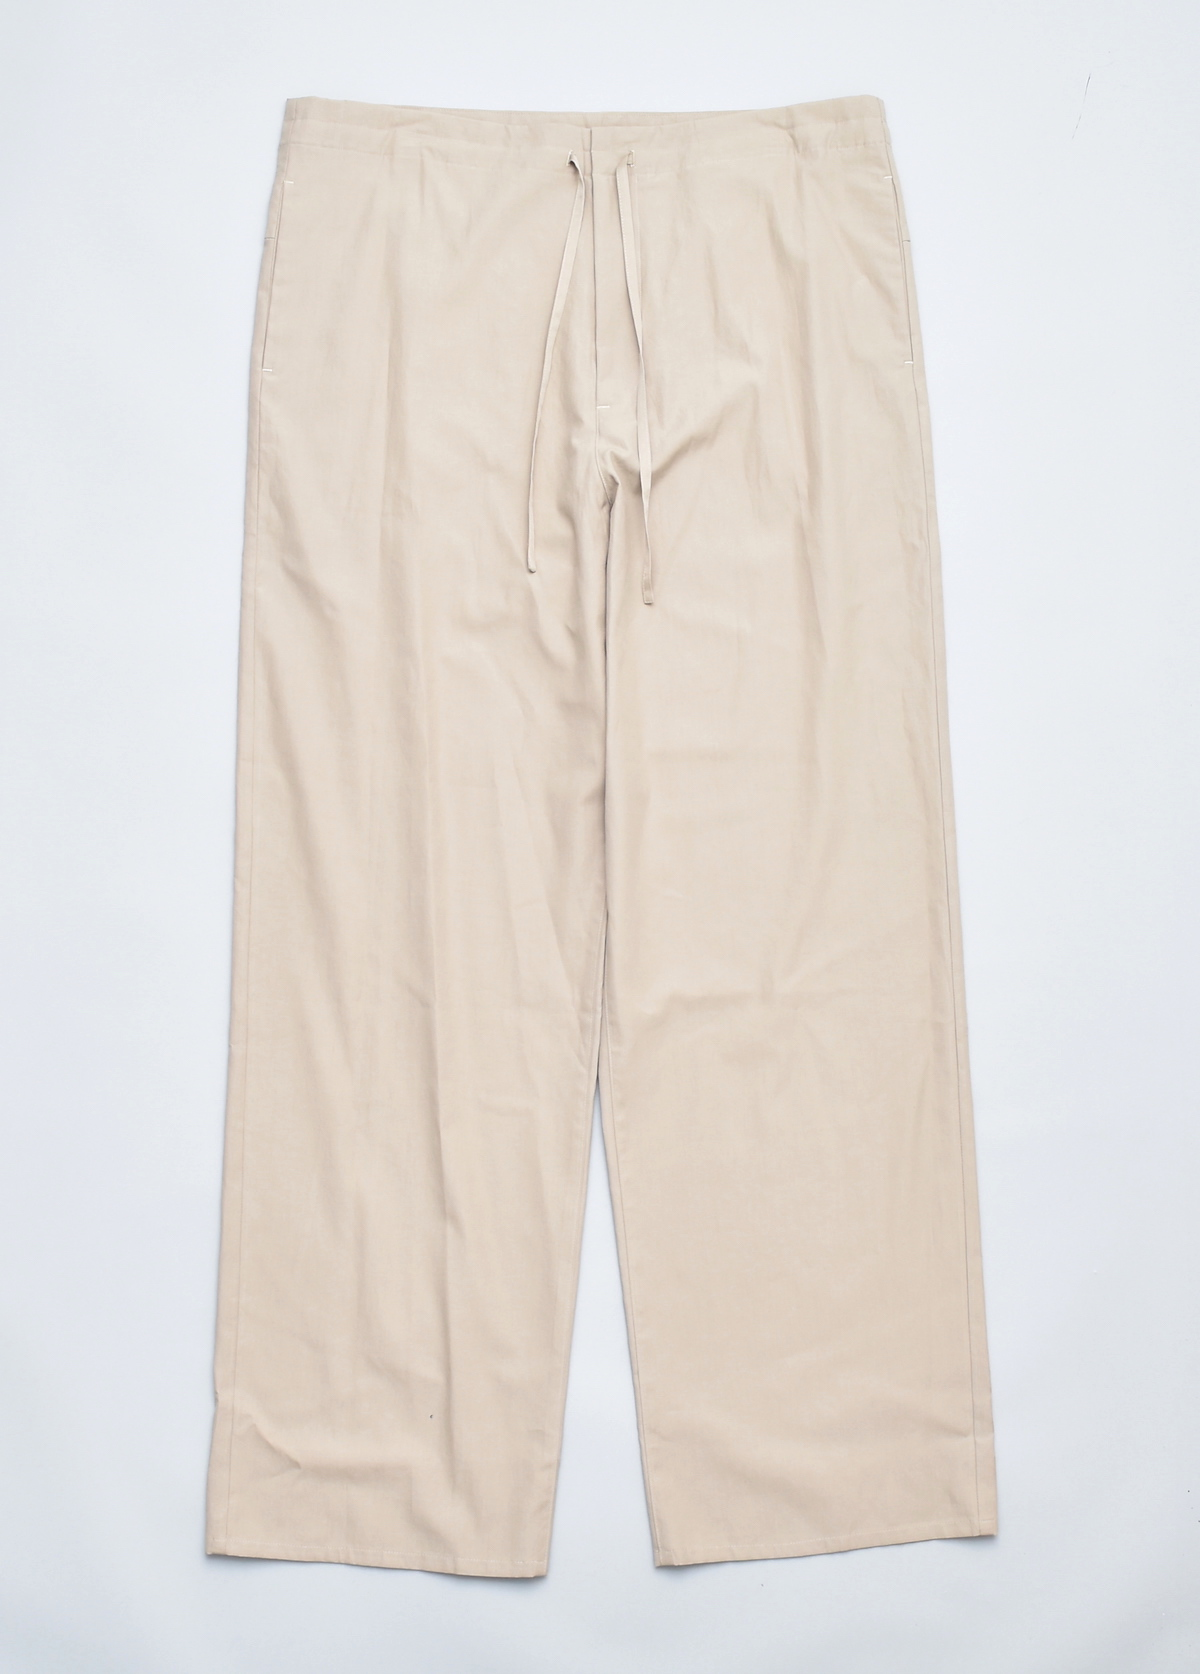 AURALEE「 WASHED FINX TWILL EASY WIDE PANTS / GRAY BEIGE 」